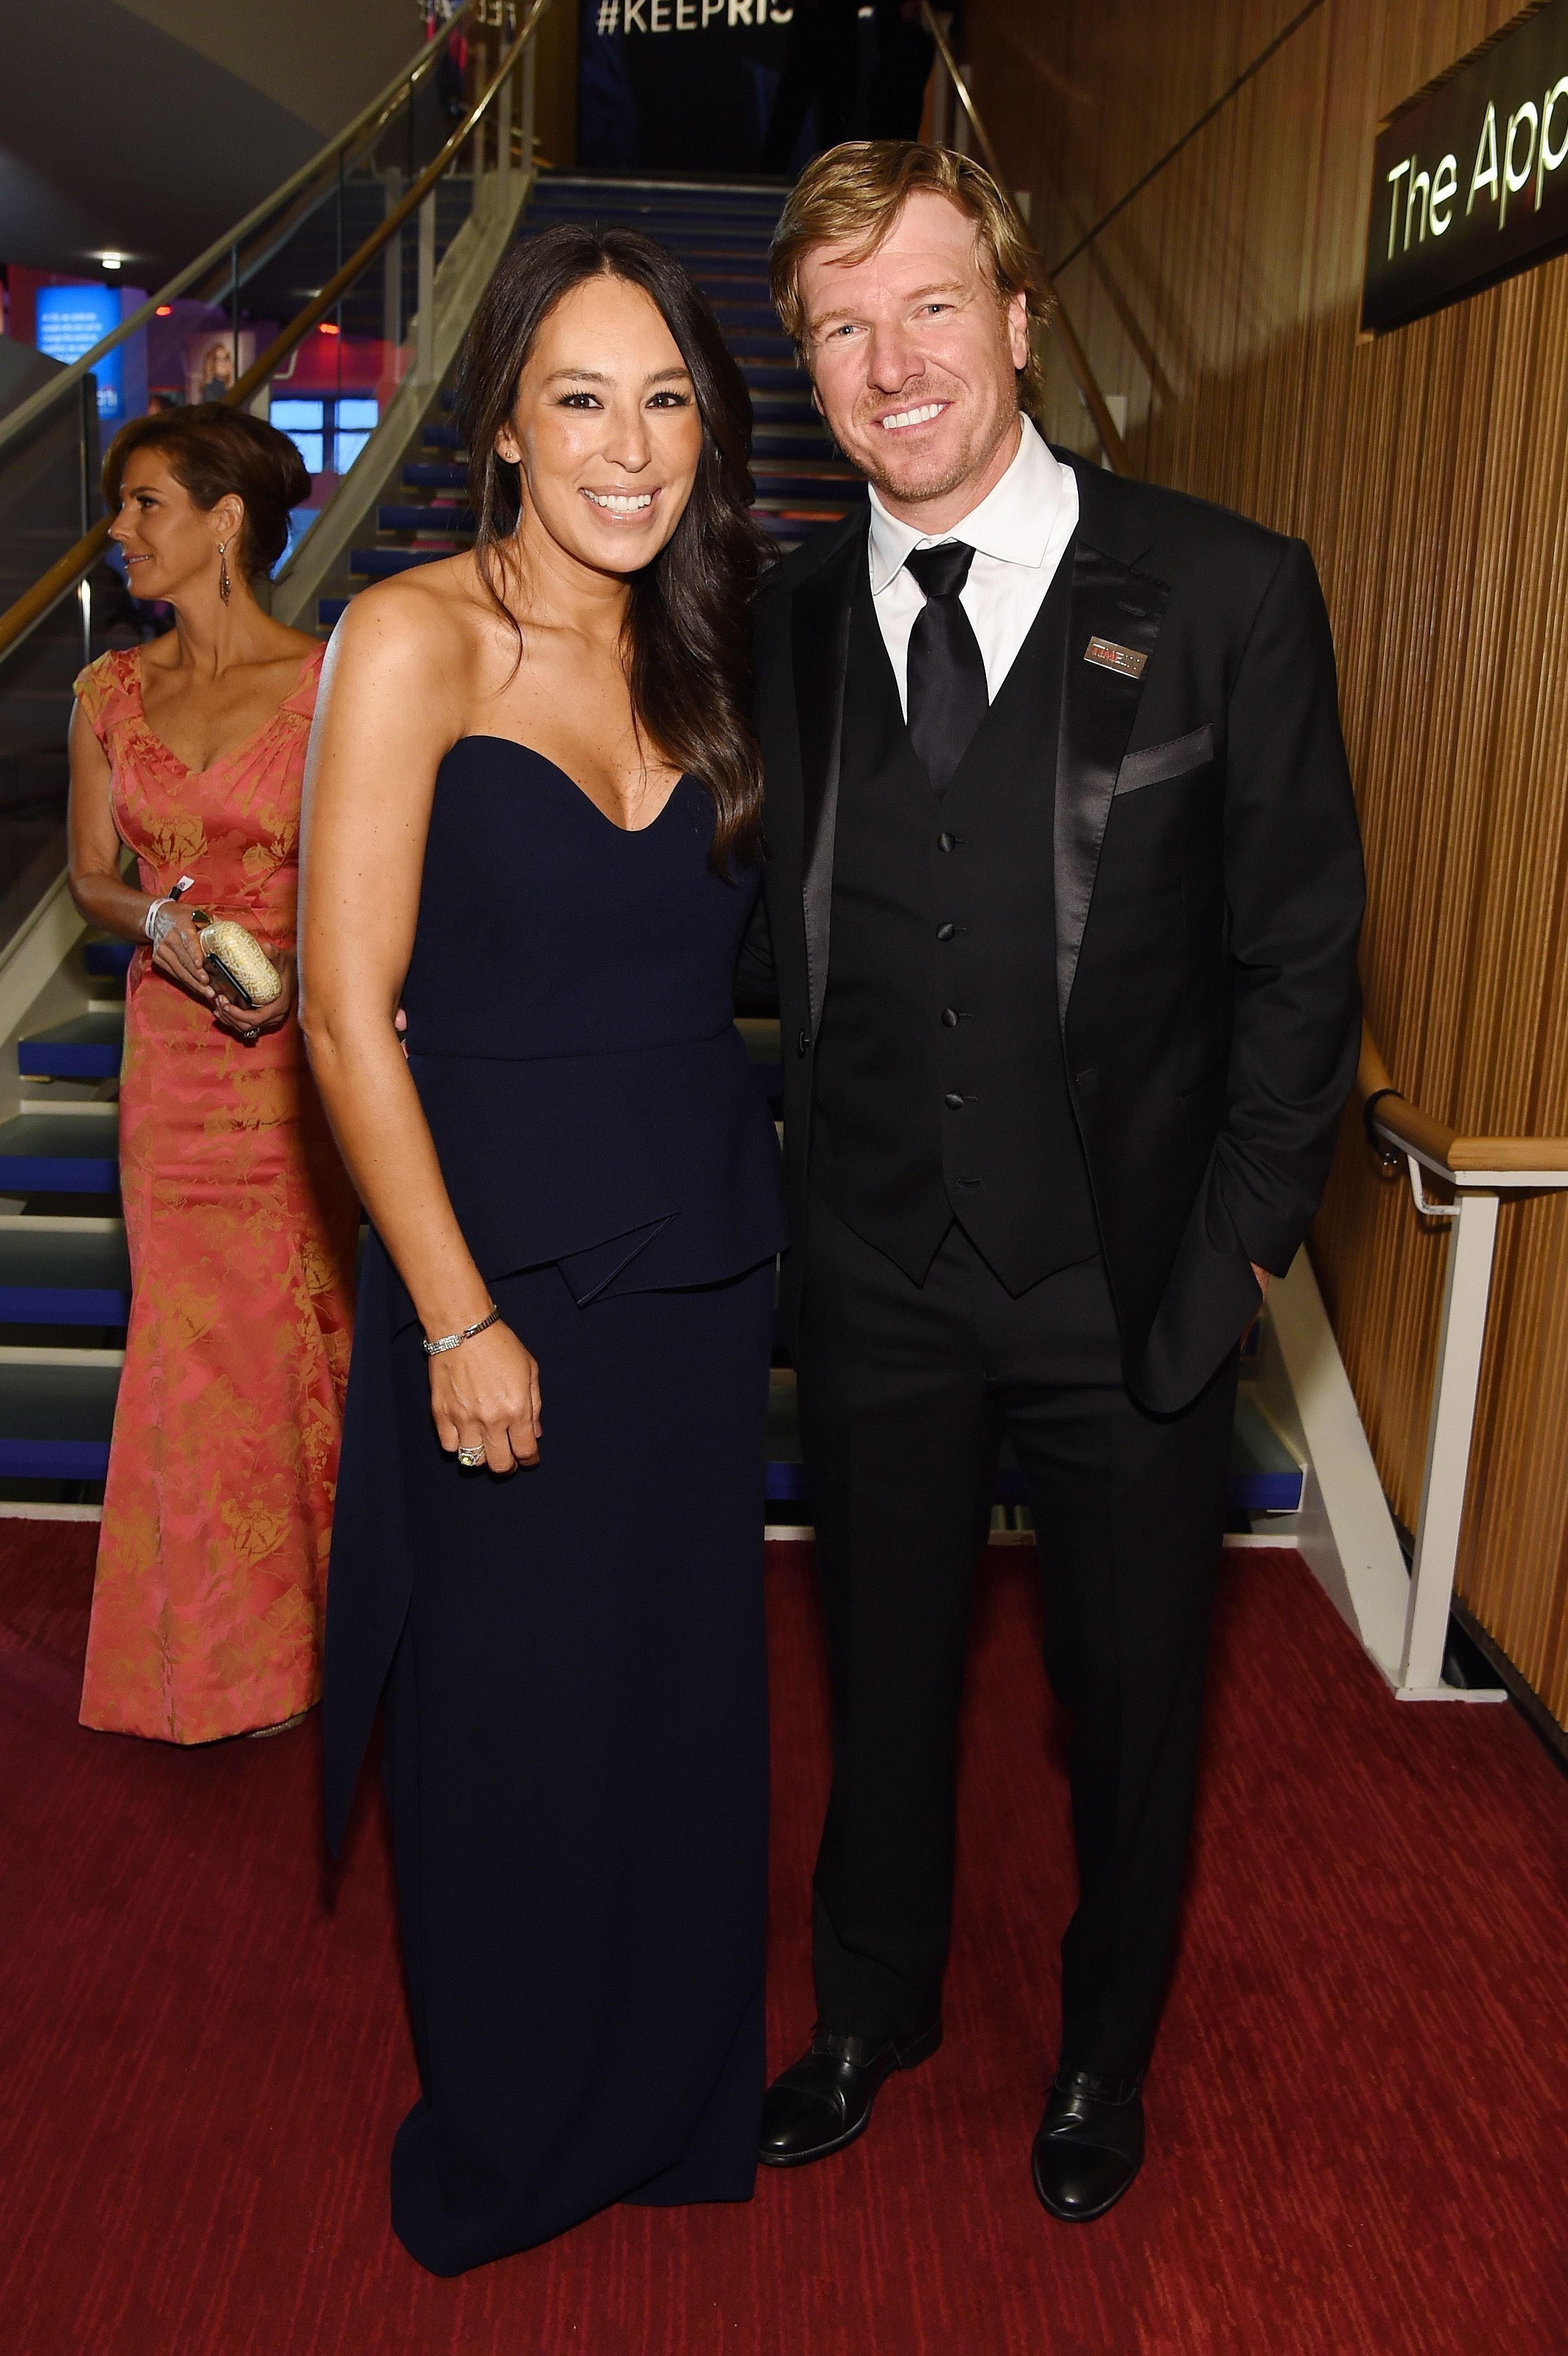 Joanna and Chip Gaines at the TIME 100 Gala Cocktails at Jazz at Lincoln Center on April 23, 2019 | Photo: Getty Images